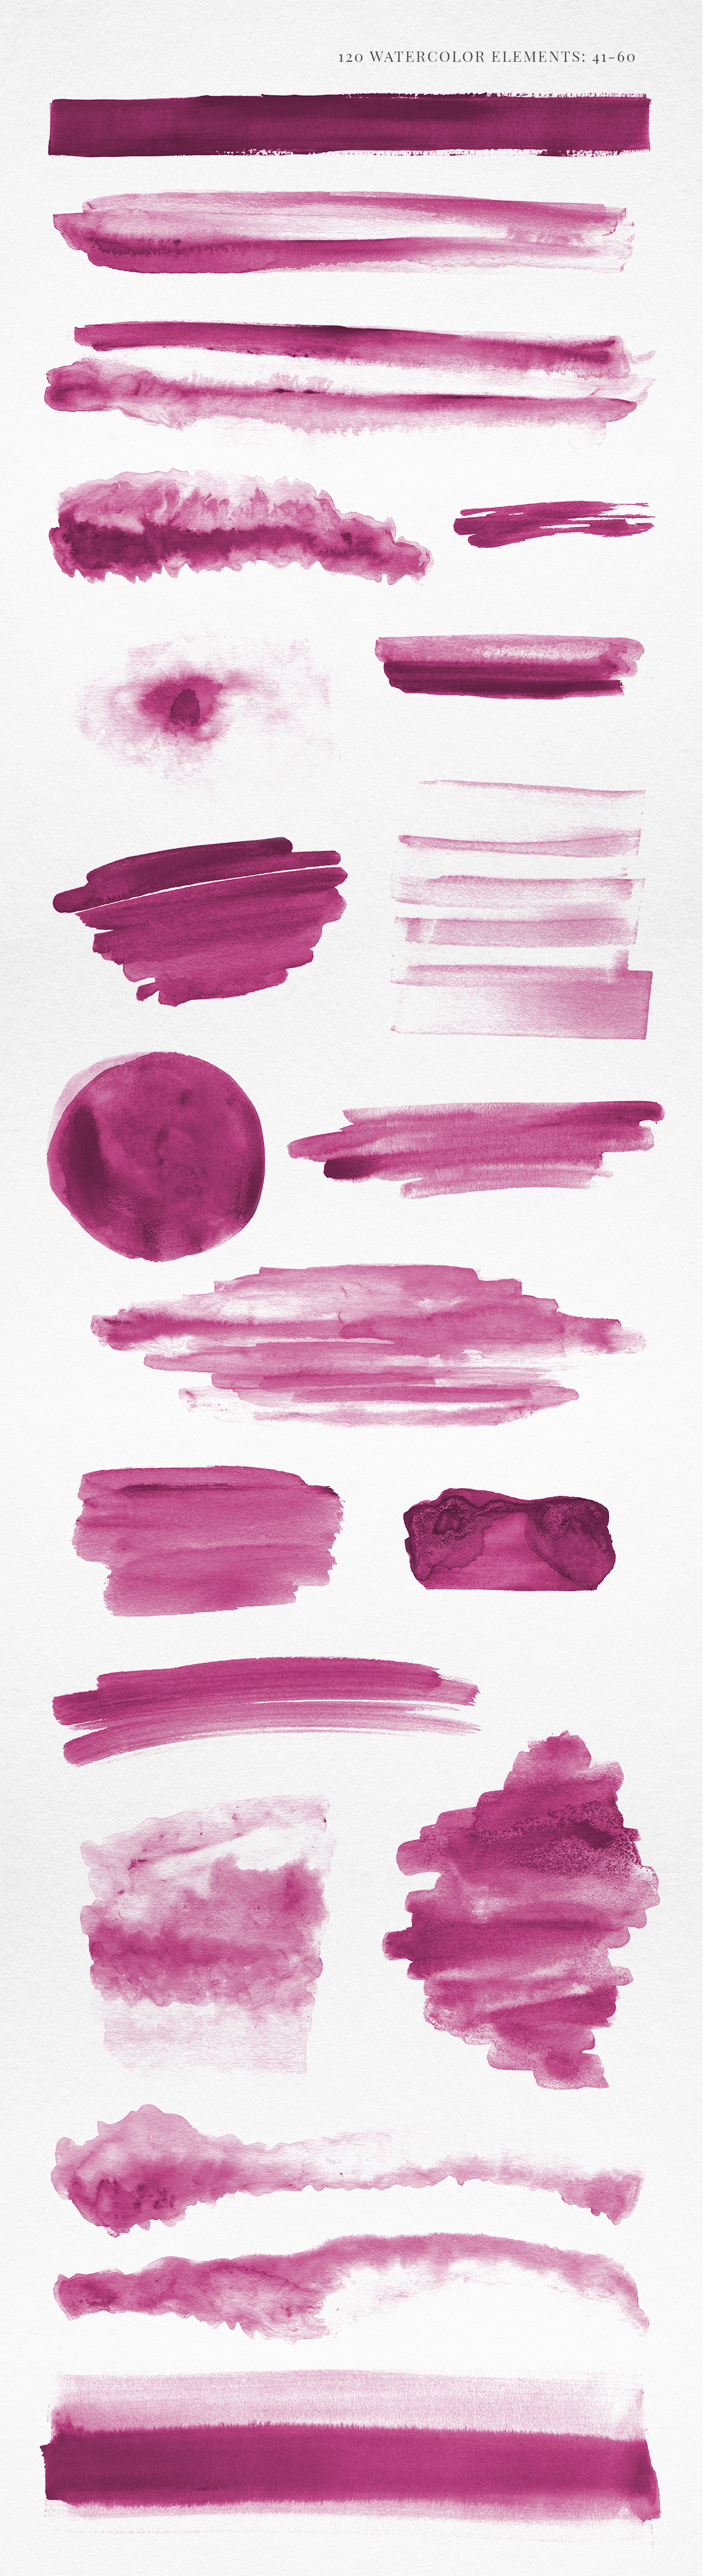 120 Pink Watercolor Texture Elements example image 4